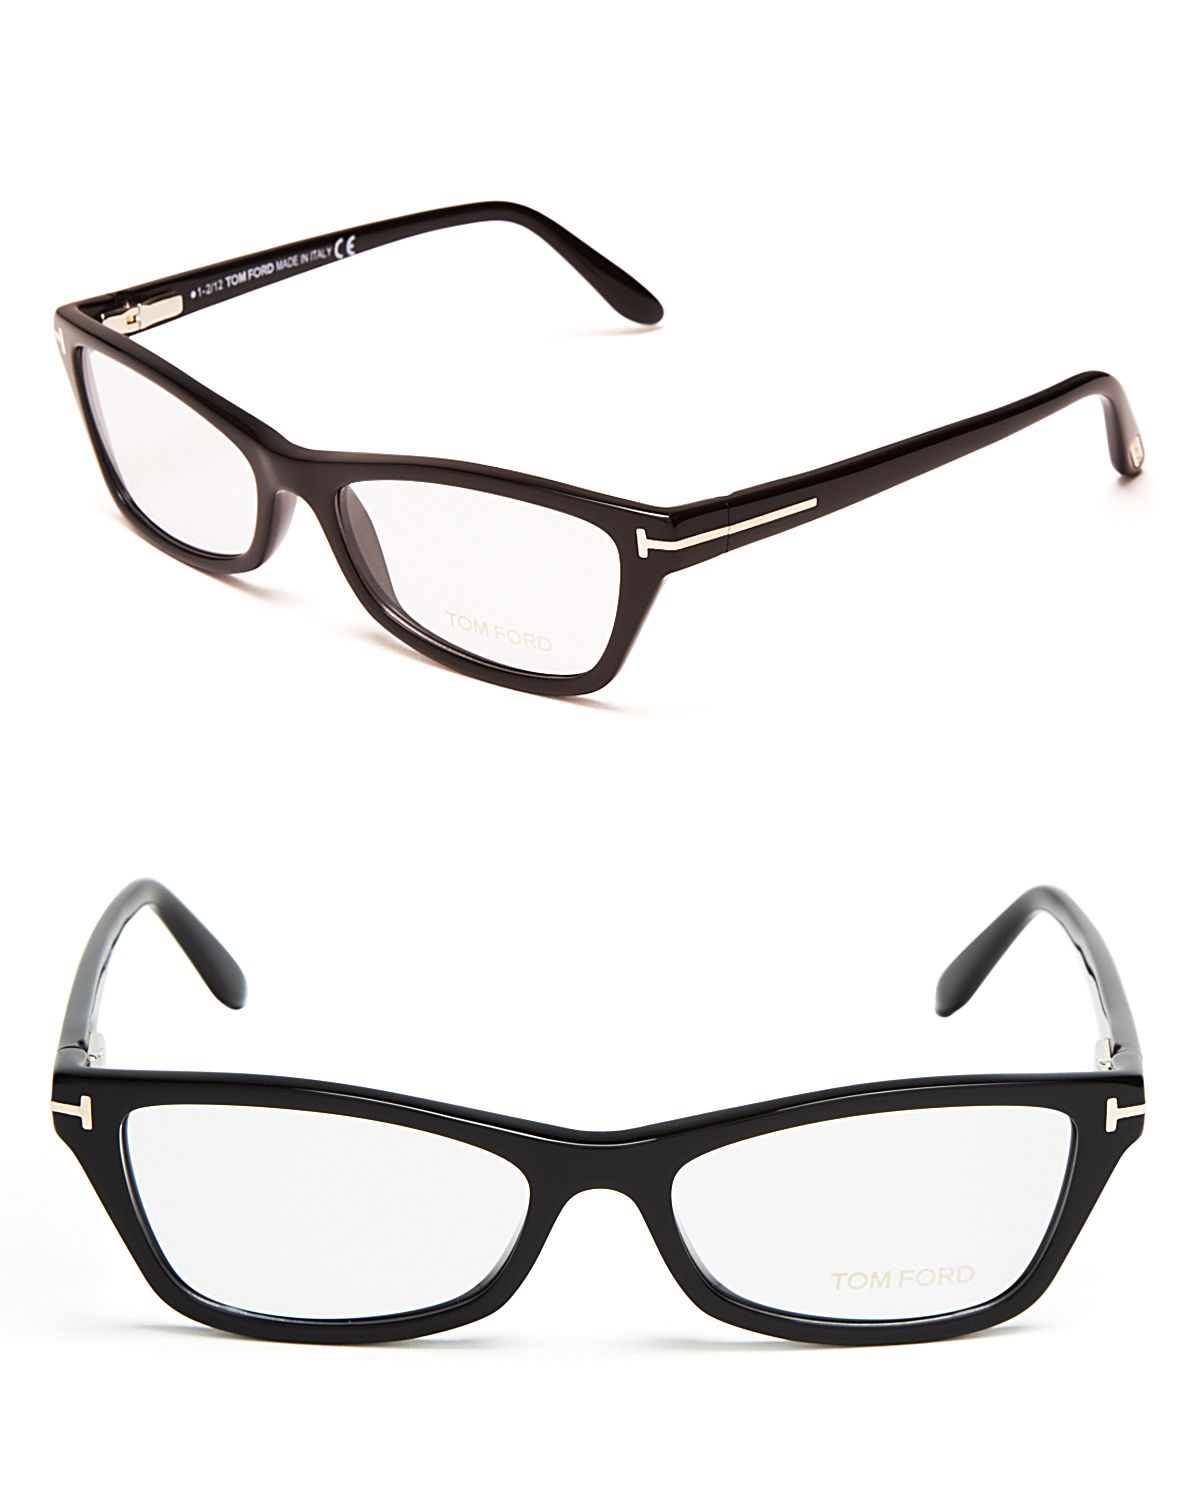 Lyst - Tom Ford Rectangular Cat Eye Optical Frames in Black